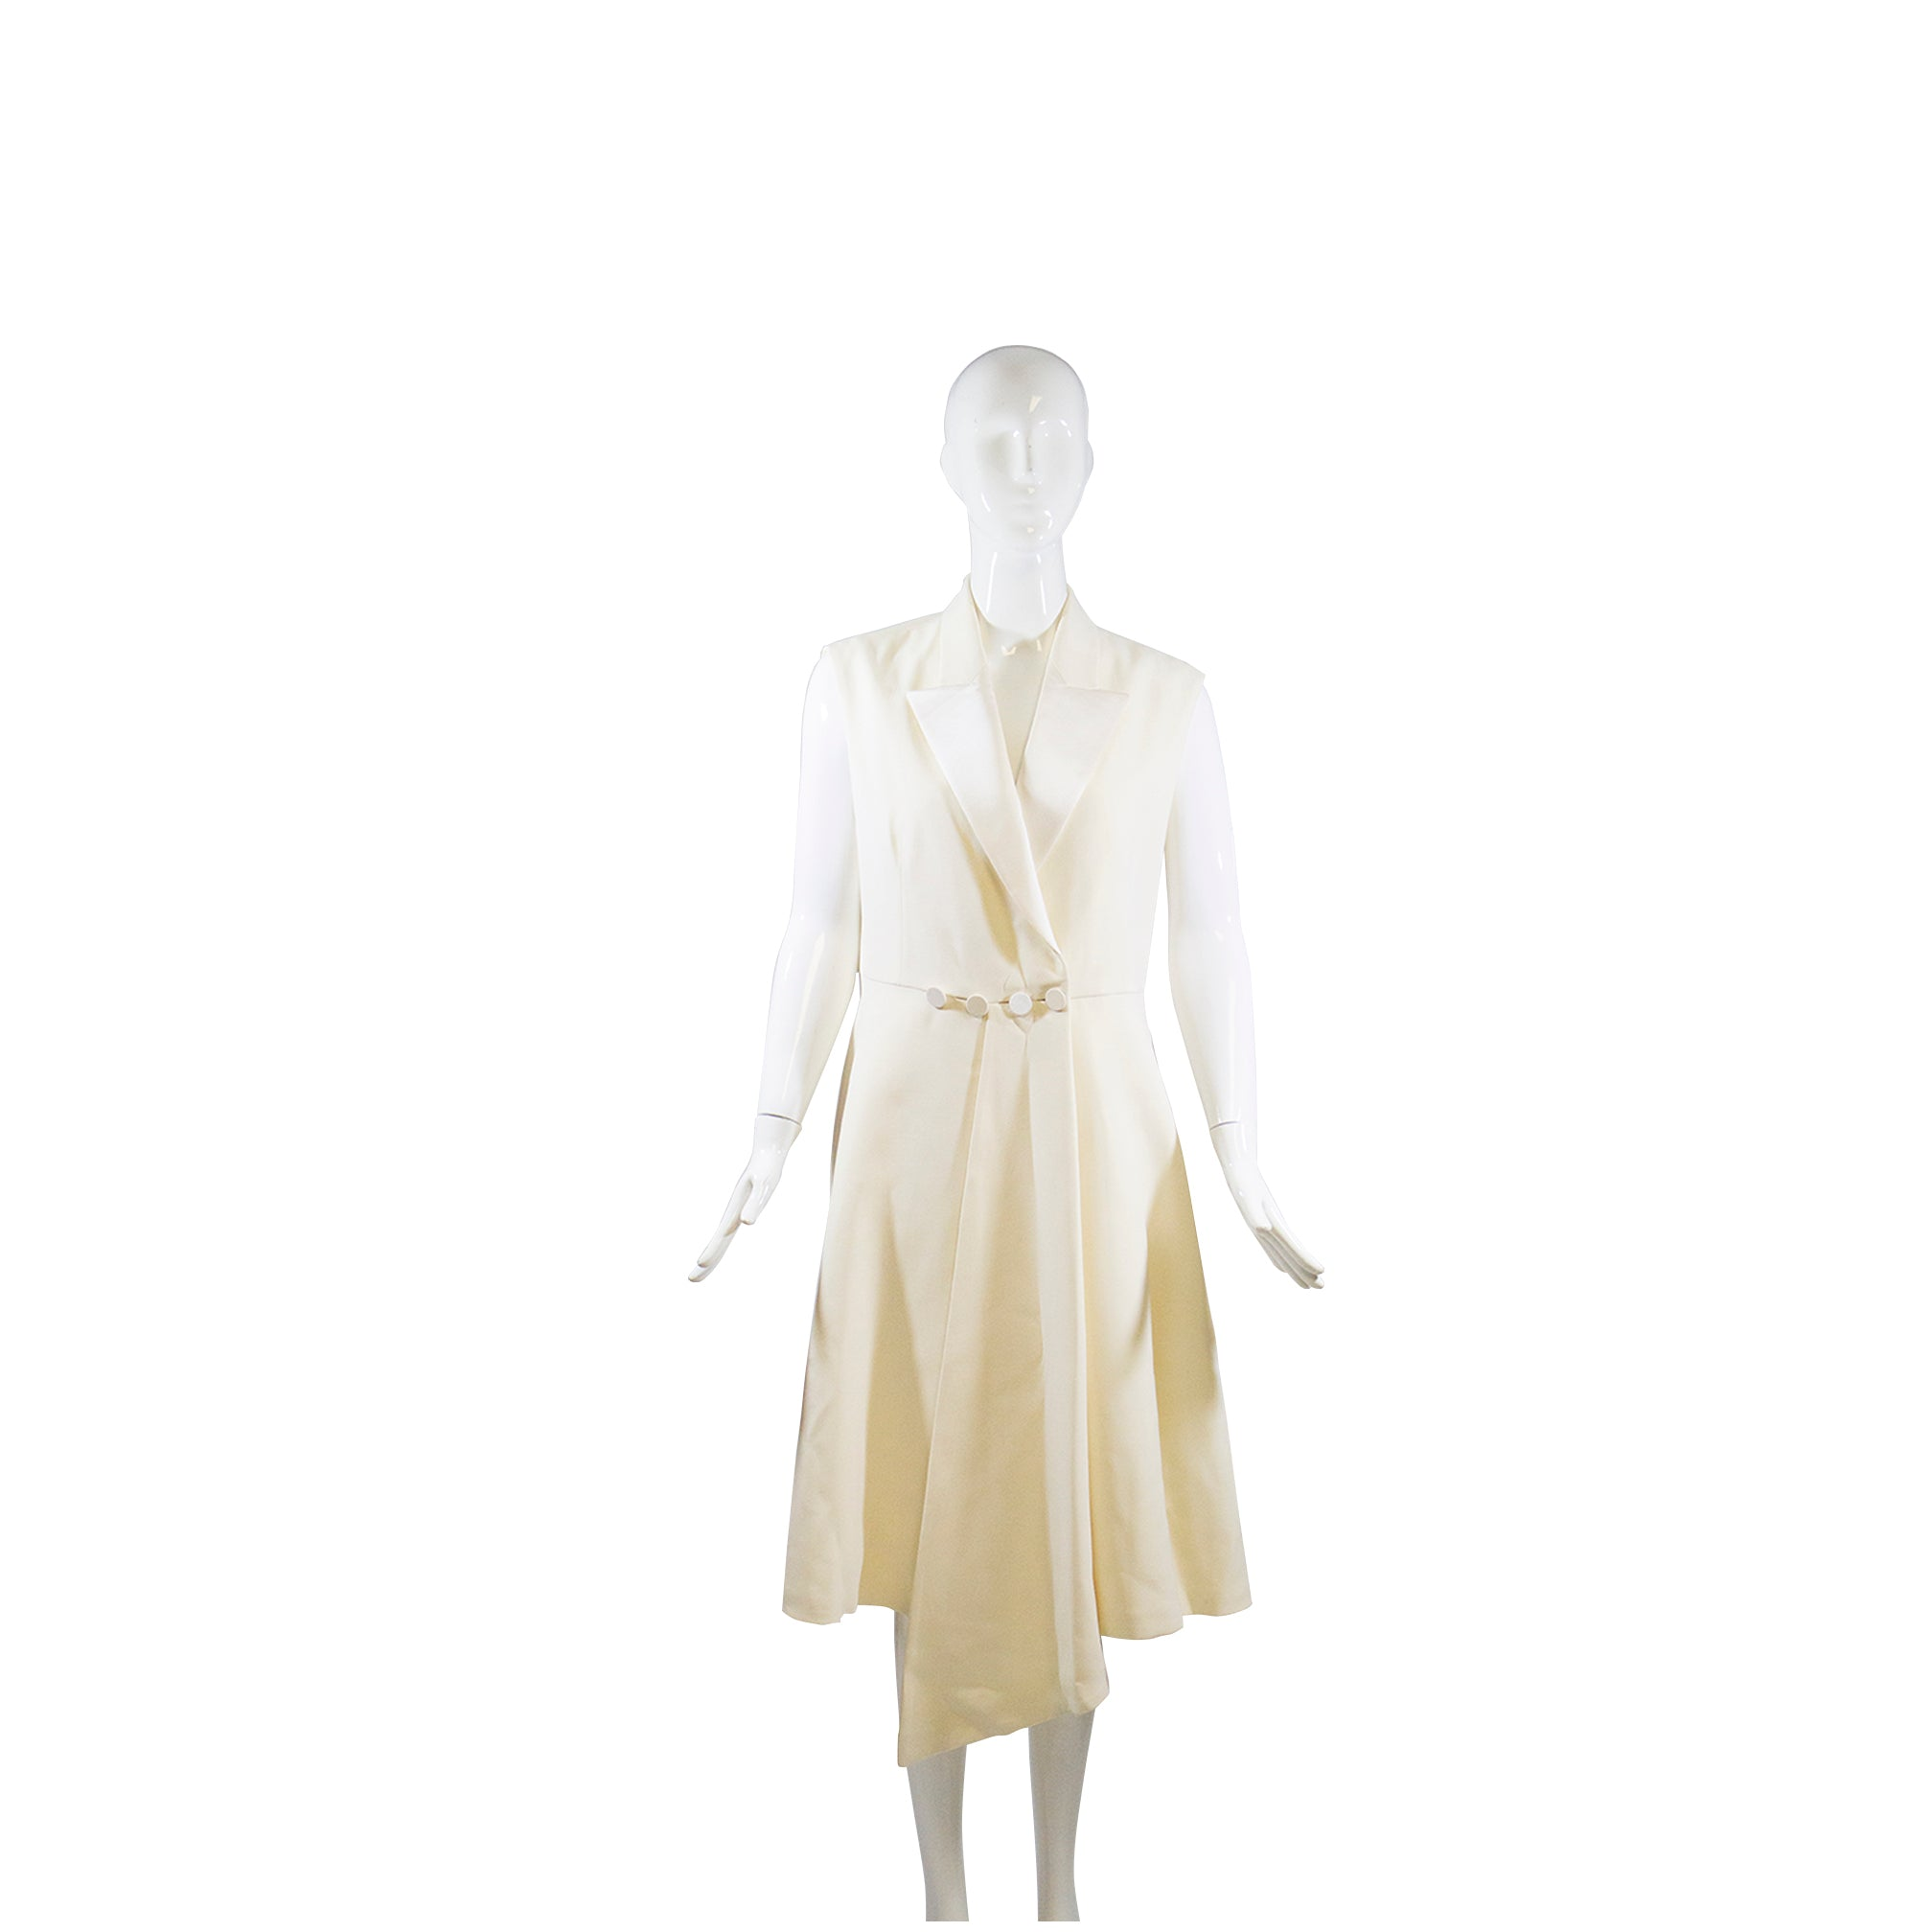 CHRISTIAN DIOR 15C Ivory Creme Silk Wool Sleeveless V Neck Wrap Dress IT46 10